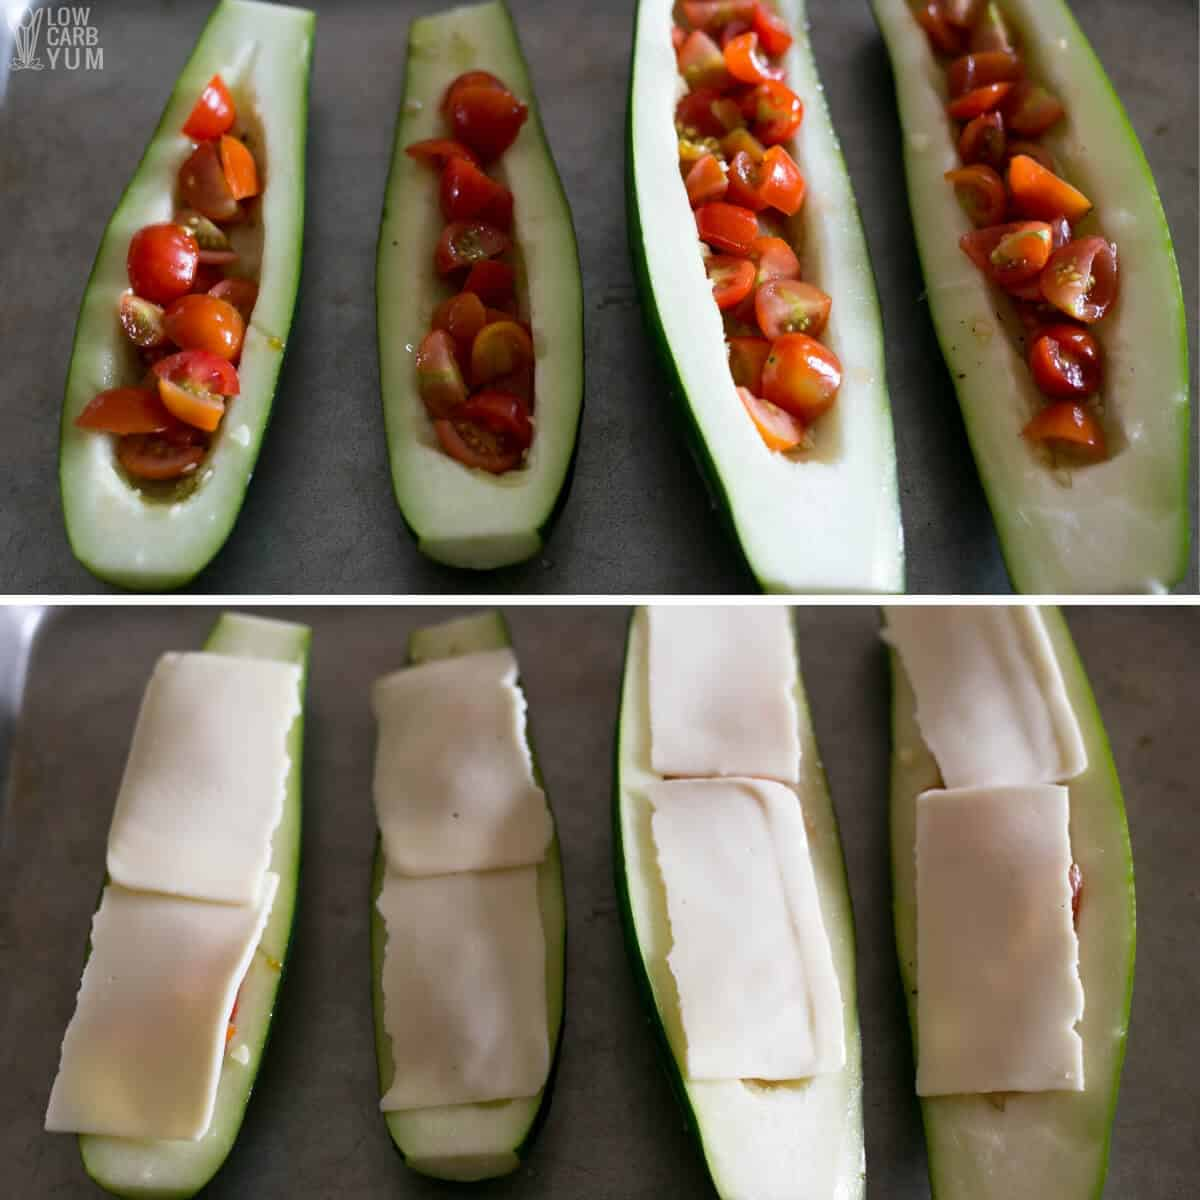 zucchini pizza toppings